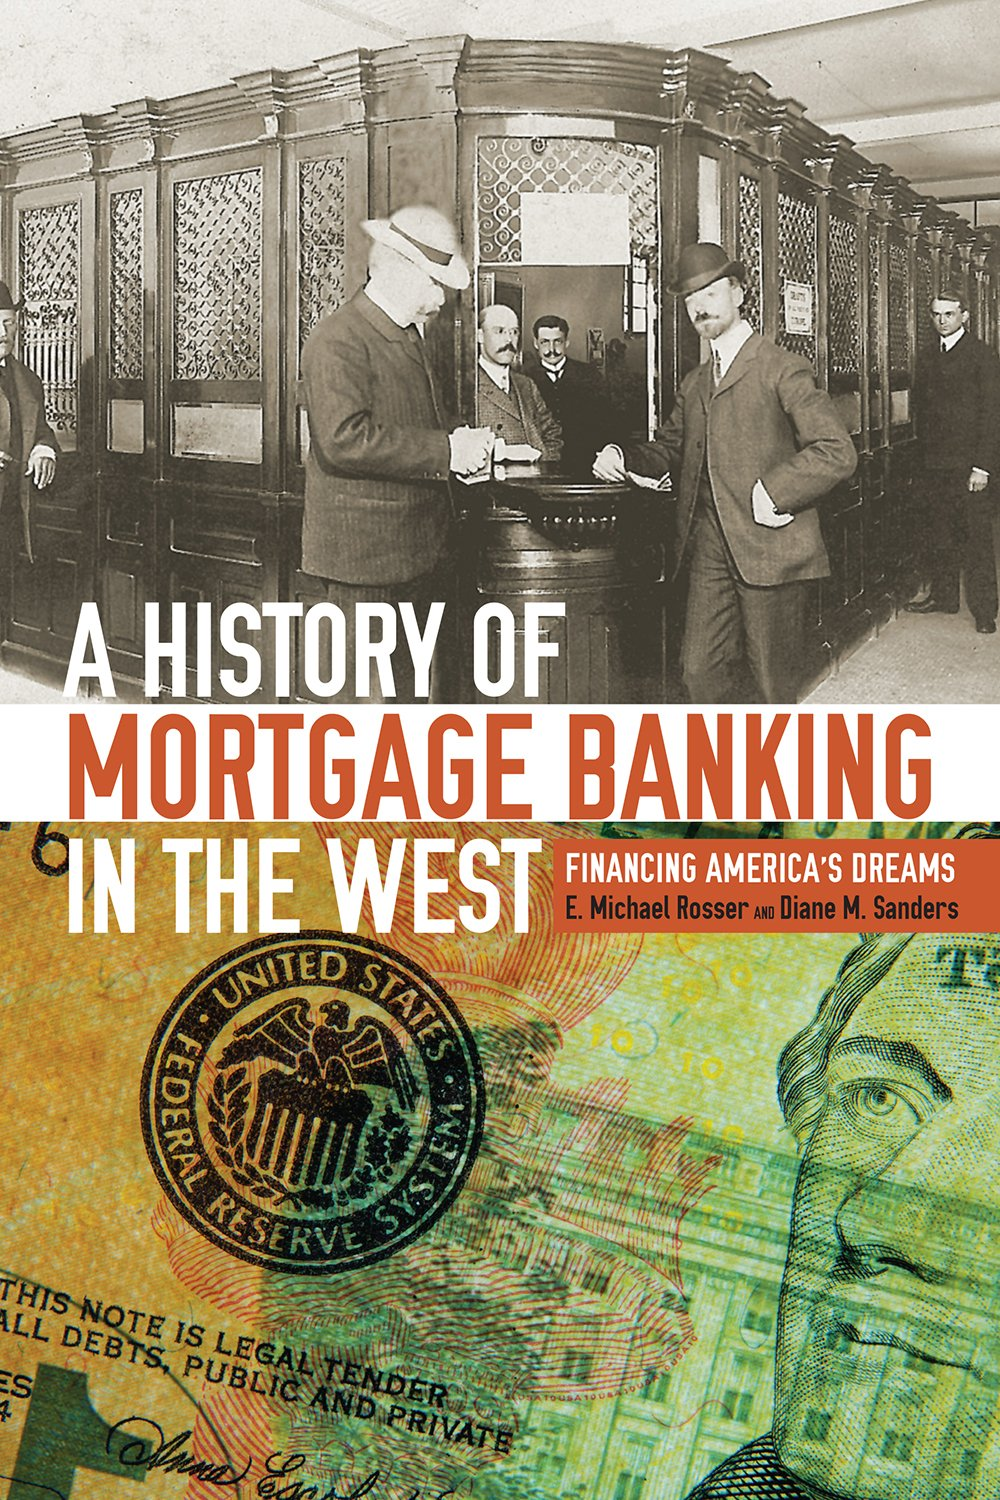 Image result for A History of Mortgage Banking in the West: Financing America's Dreams. By E. Michael Rosser and Diane M. Sanders